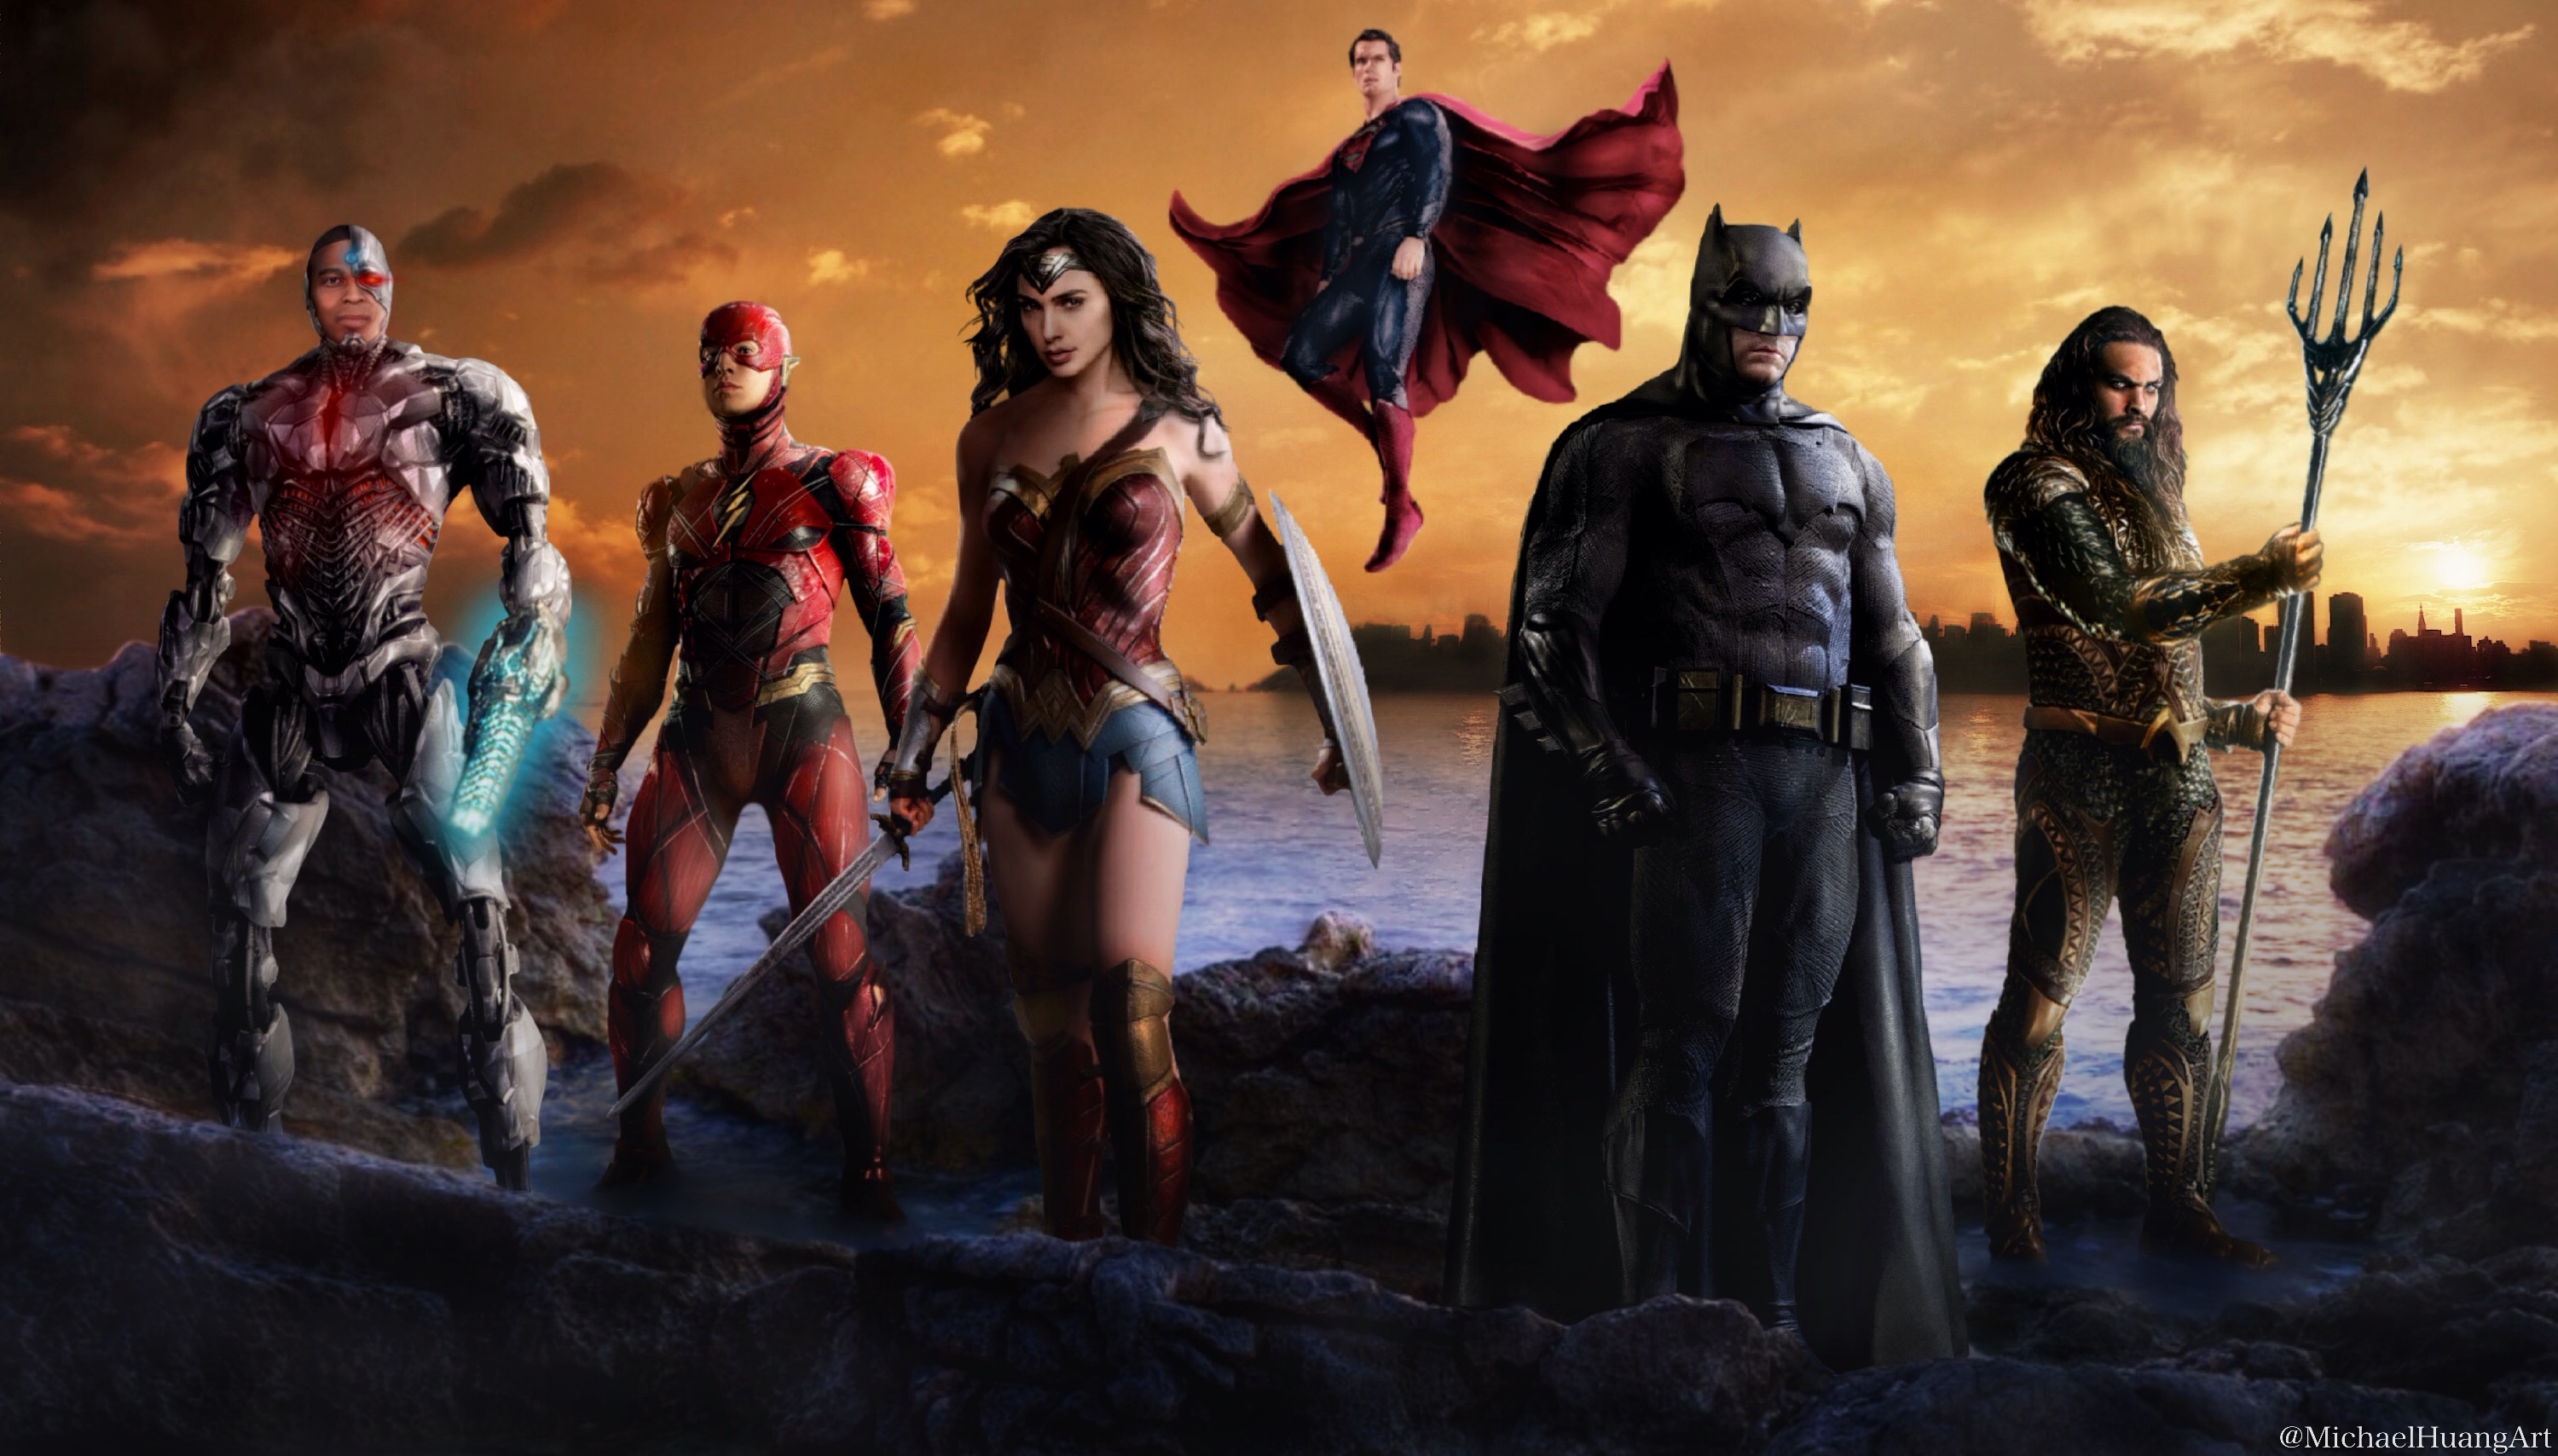 Hd wallpaper justice league - Justice League Artwork Hd